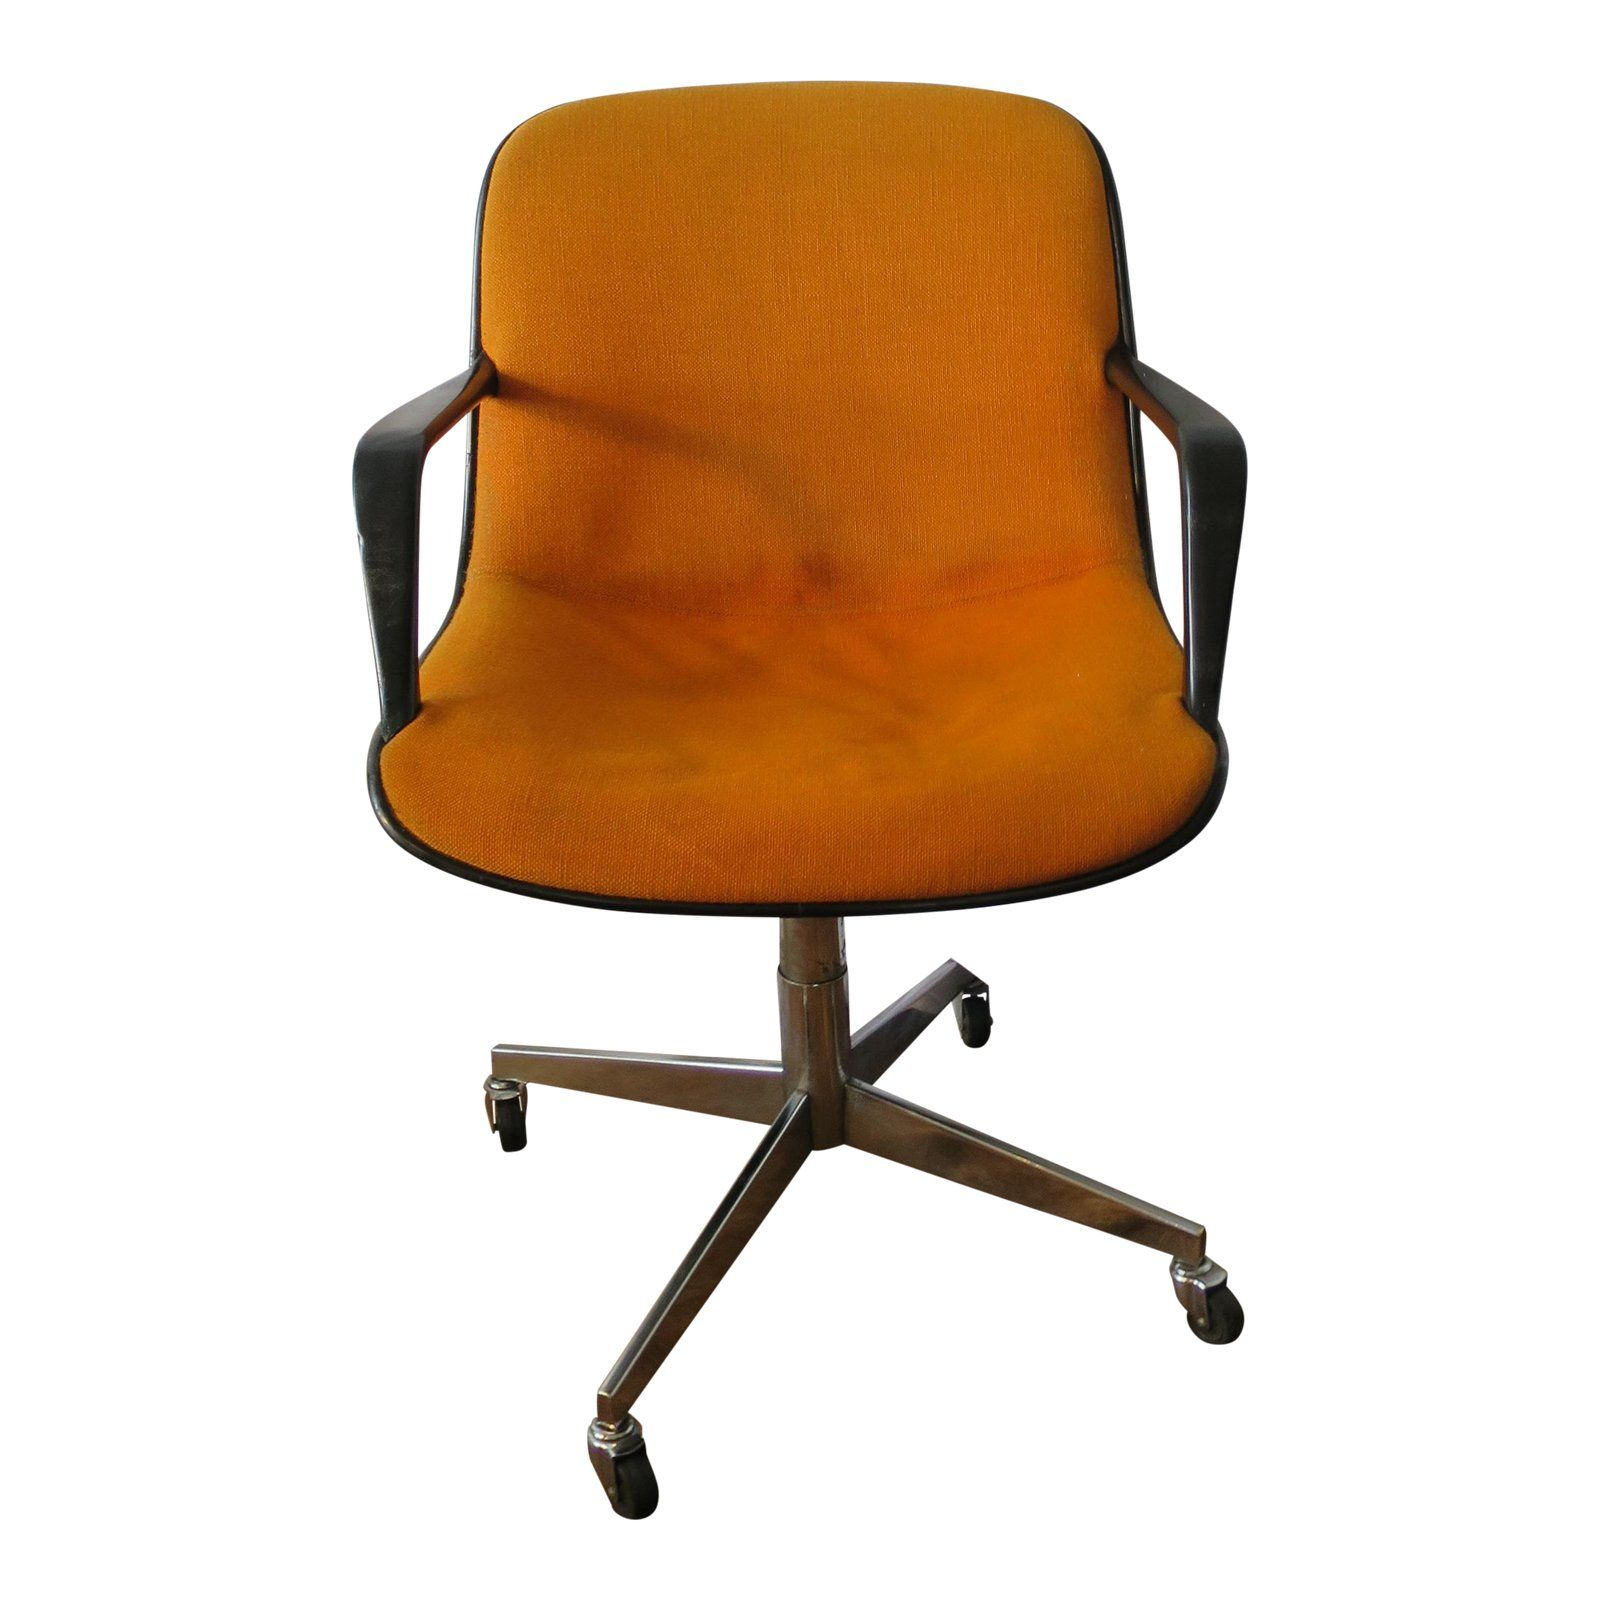 With A Mix Of Rusted Burnt Orange Black Borders And A Grey Back This Mid Century Desk Chair By Steelcase Offers Some Soul To Chair Rolling Chair Office Chair